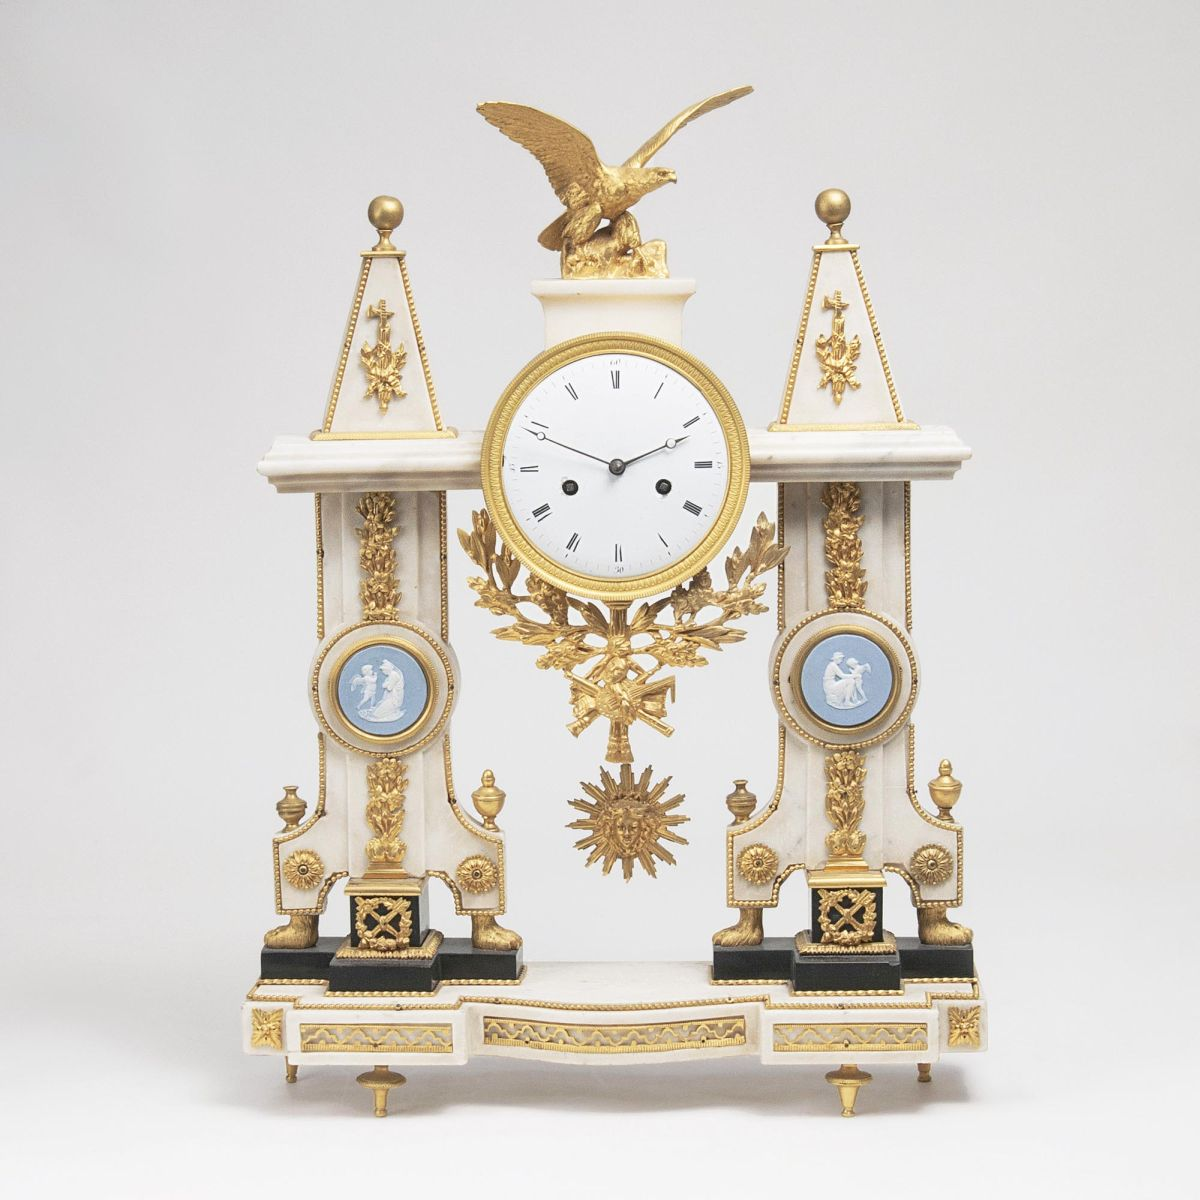 A fine Louis-Seize Pendule 'Portique' with crowning Eagle